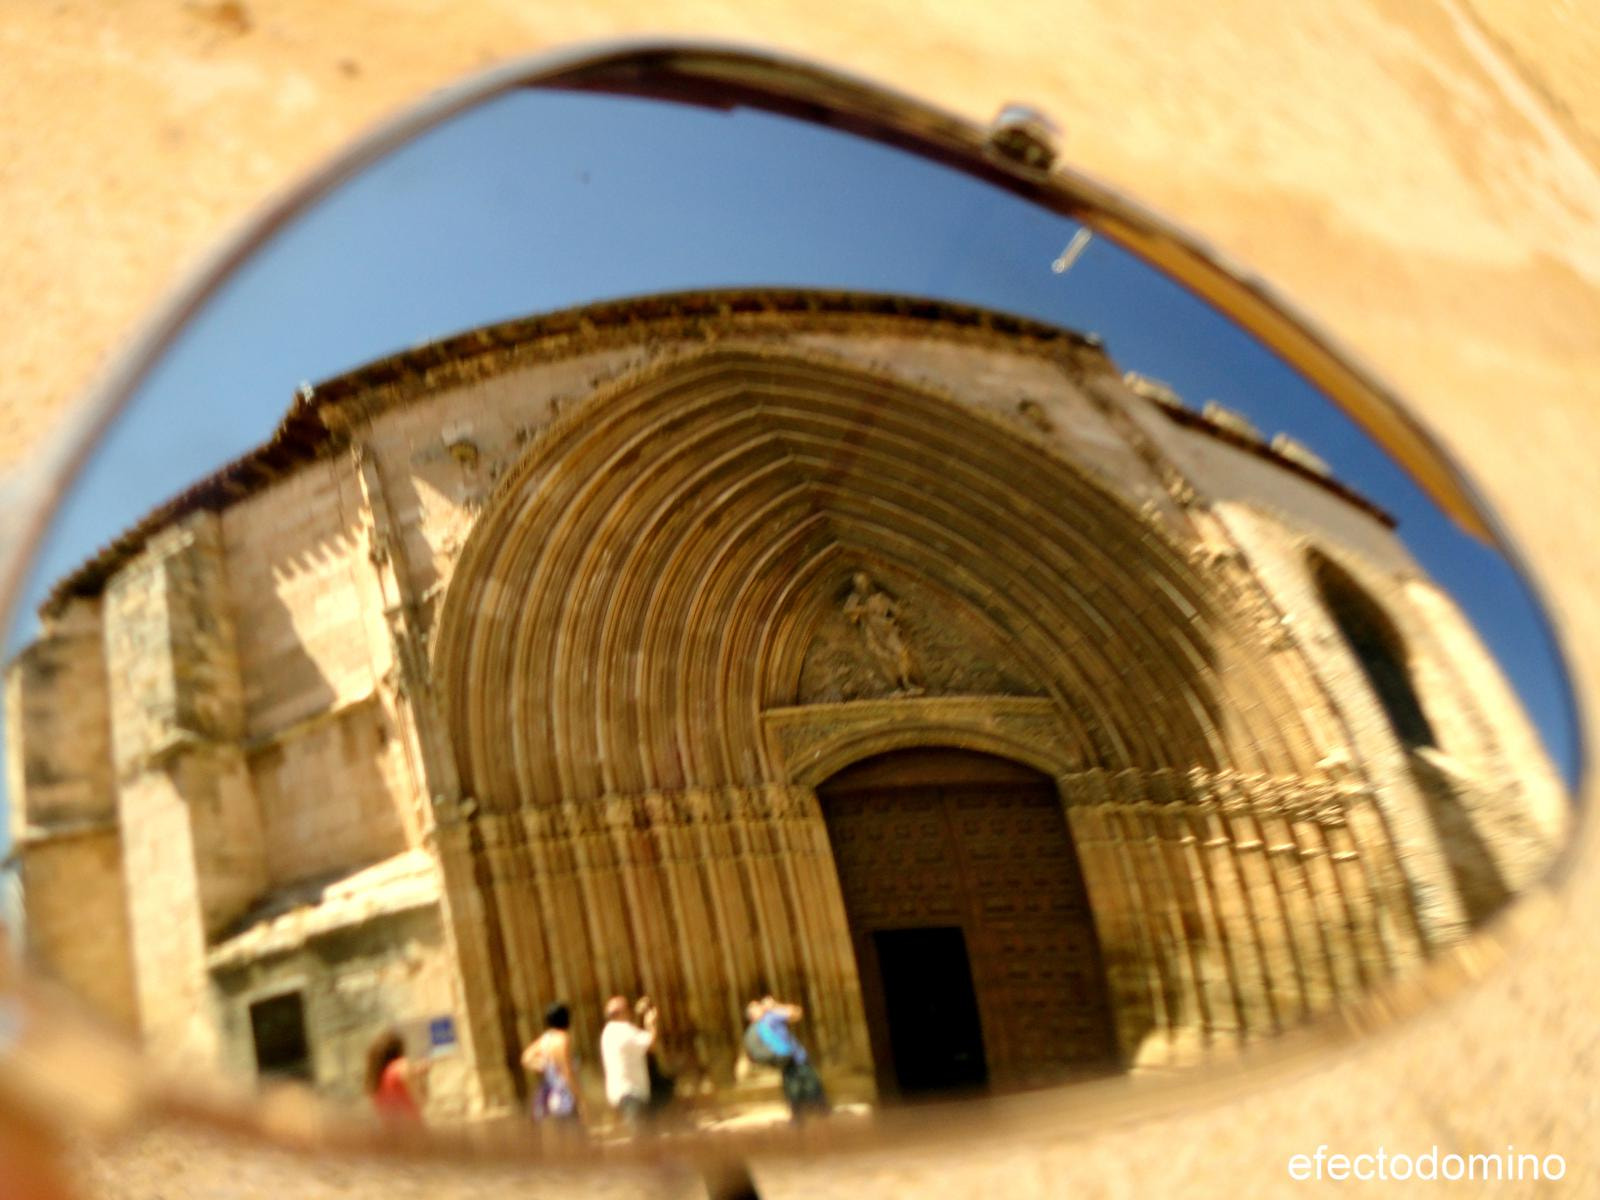 Photograph Reflejo by Efecto Domino on 500px